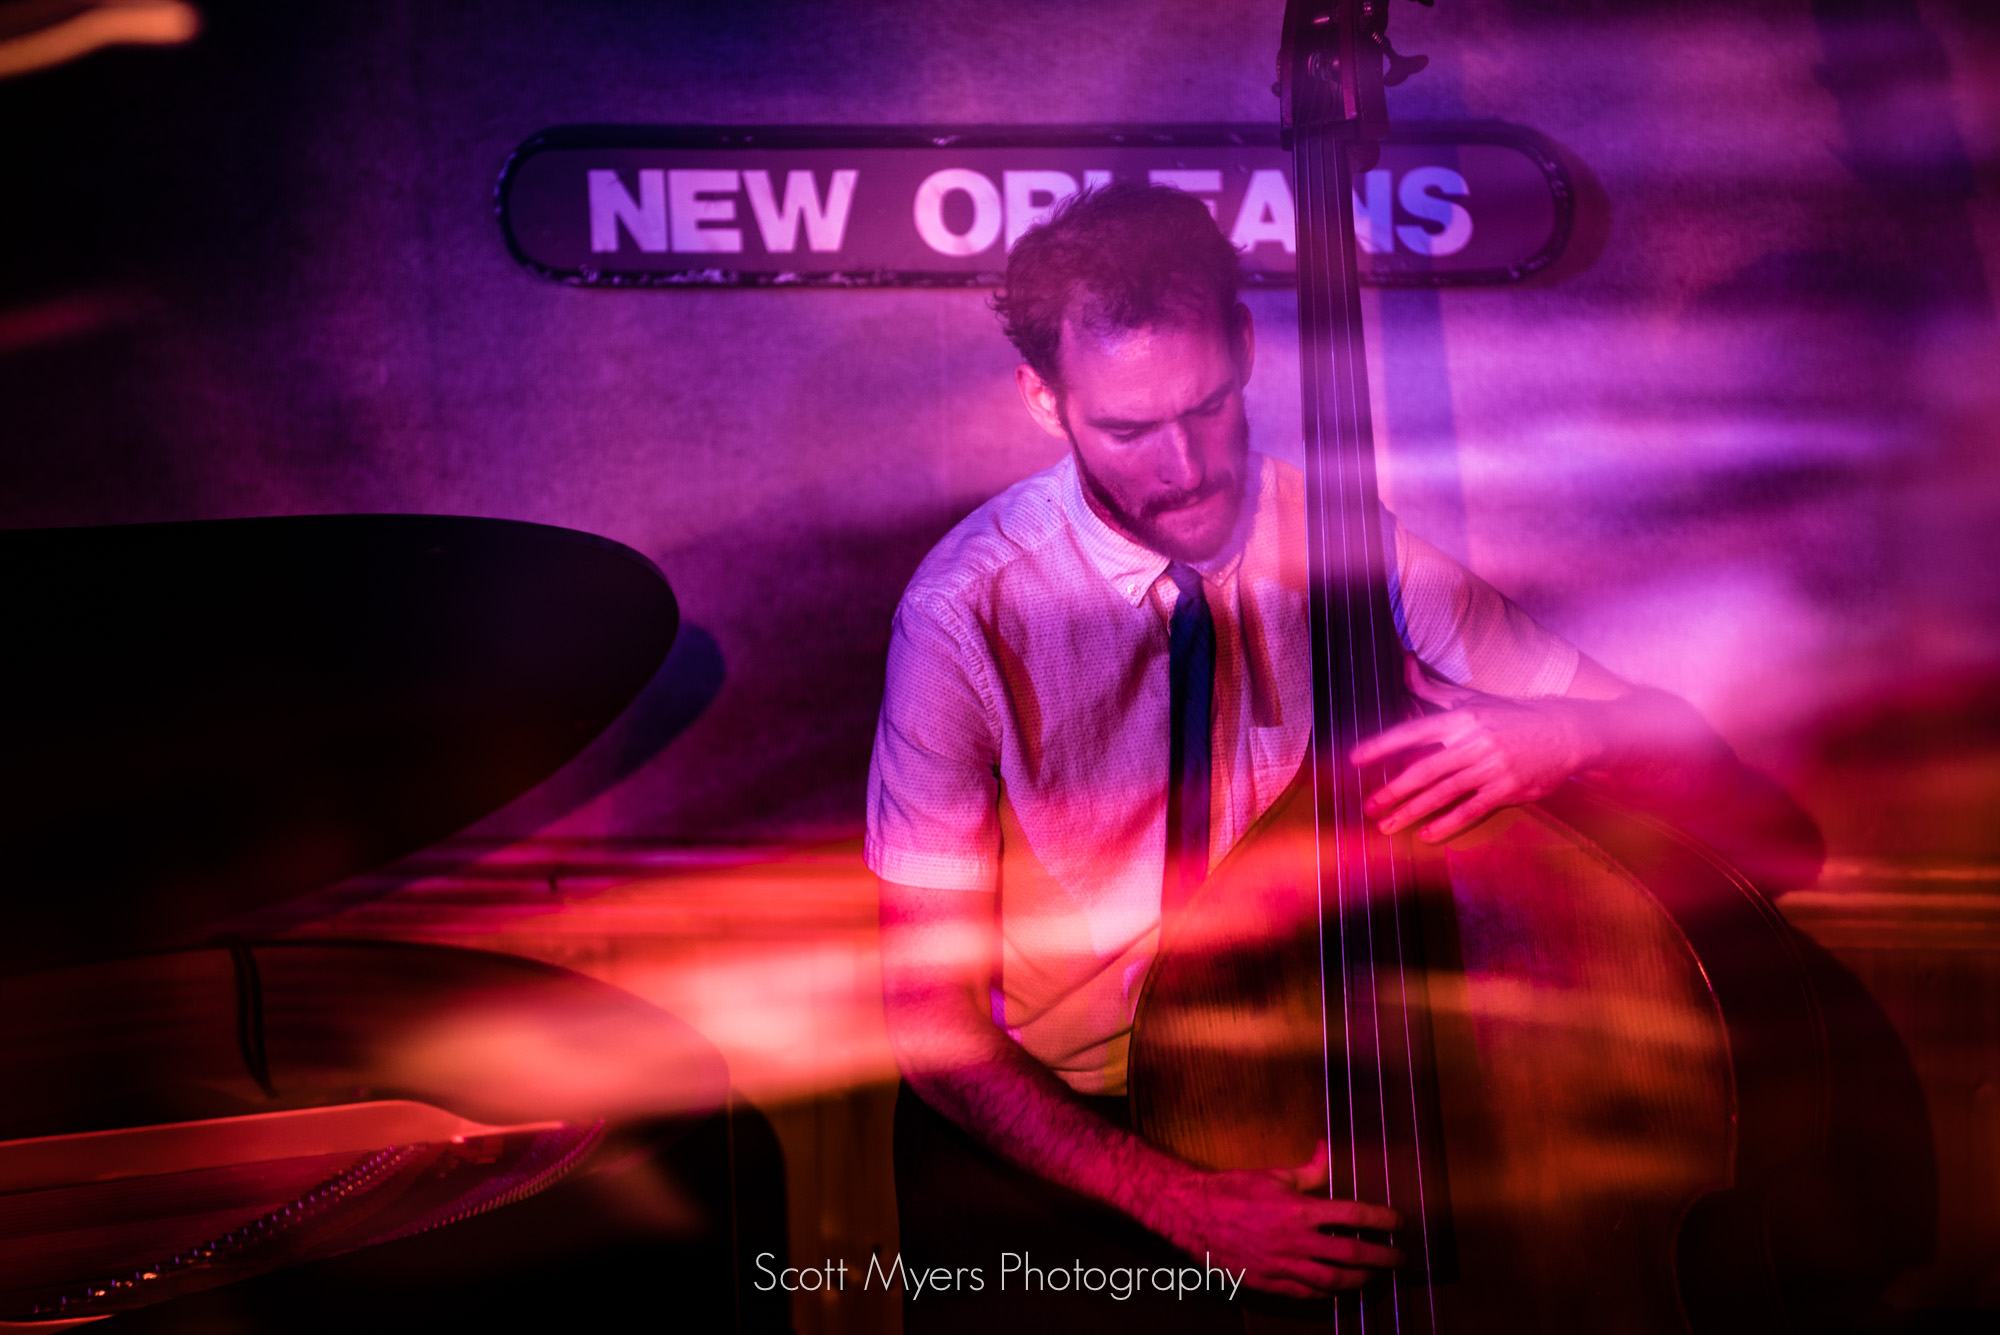 Bassist Matt Booth at Snug Harbor, New Orleans, by Scott Myers